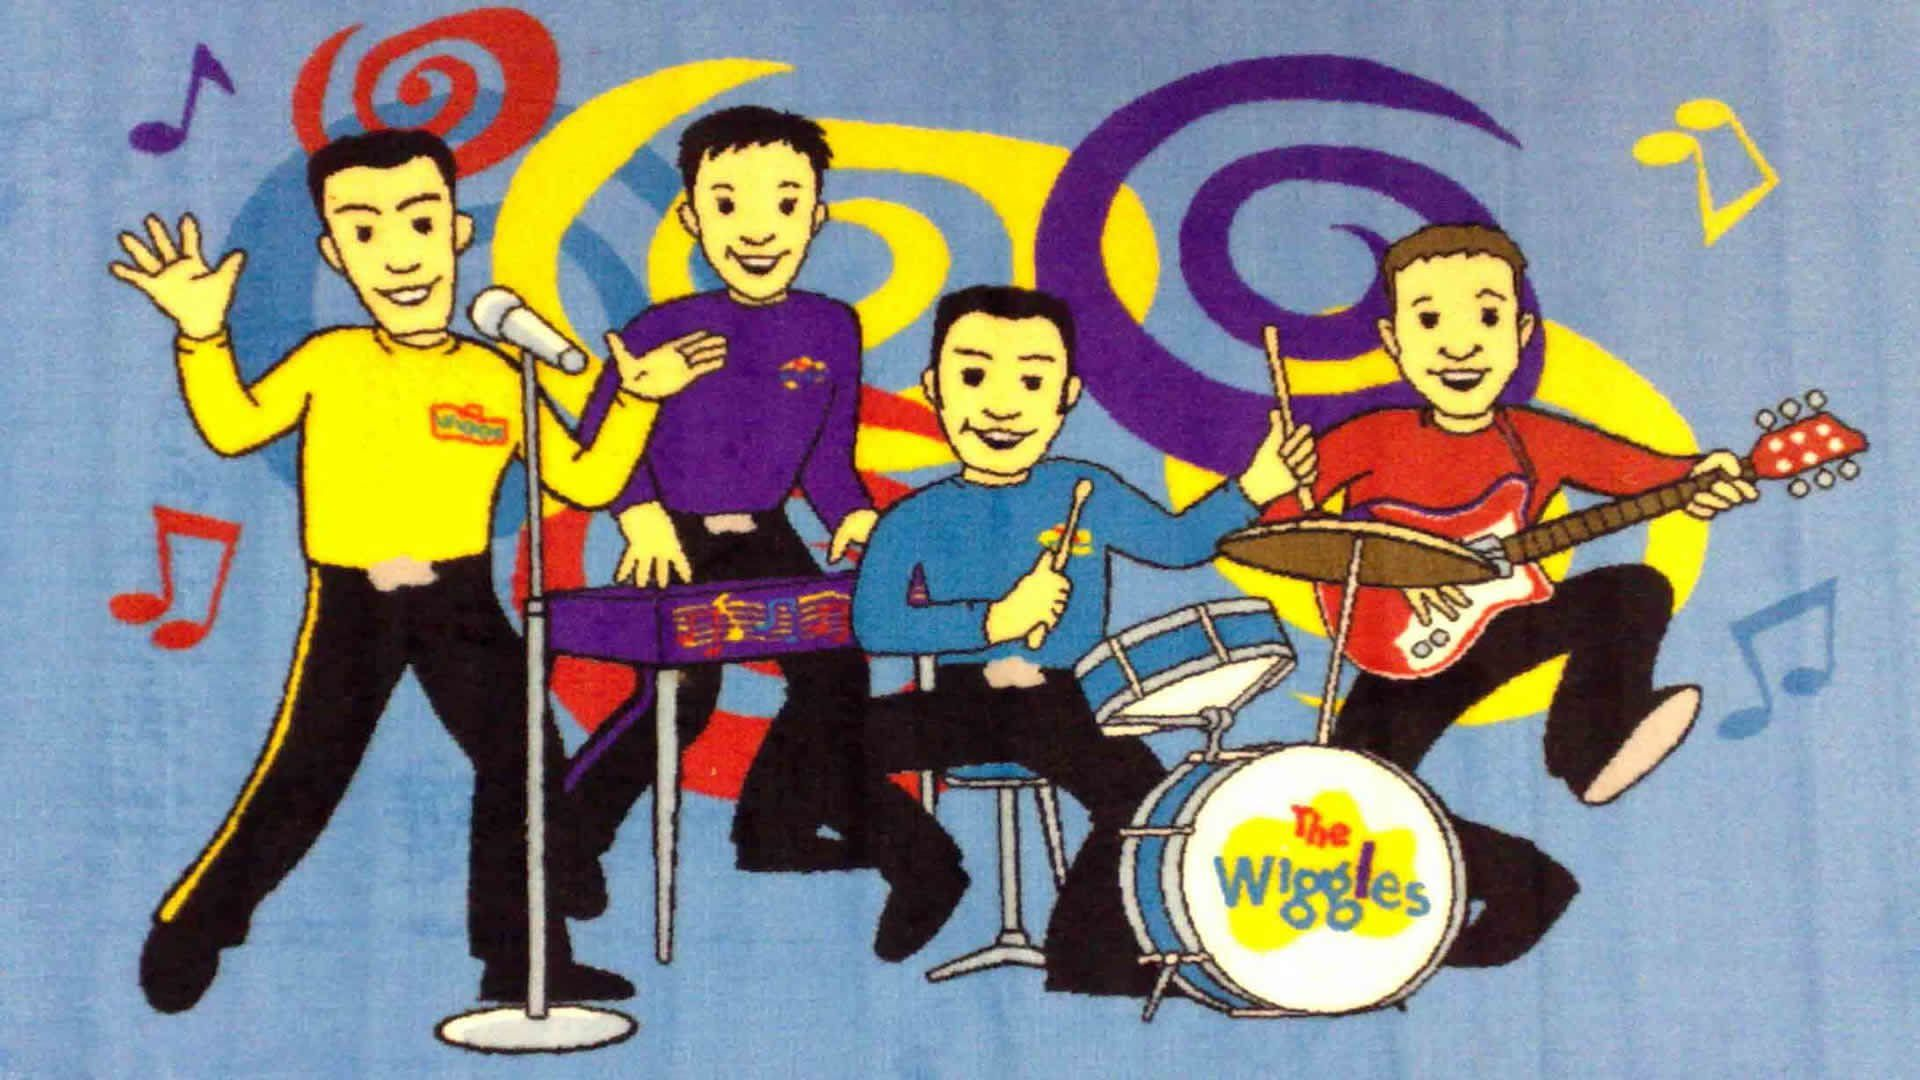 The Wiggles: Space Dancing (2003) • movies.film-cine.com